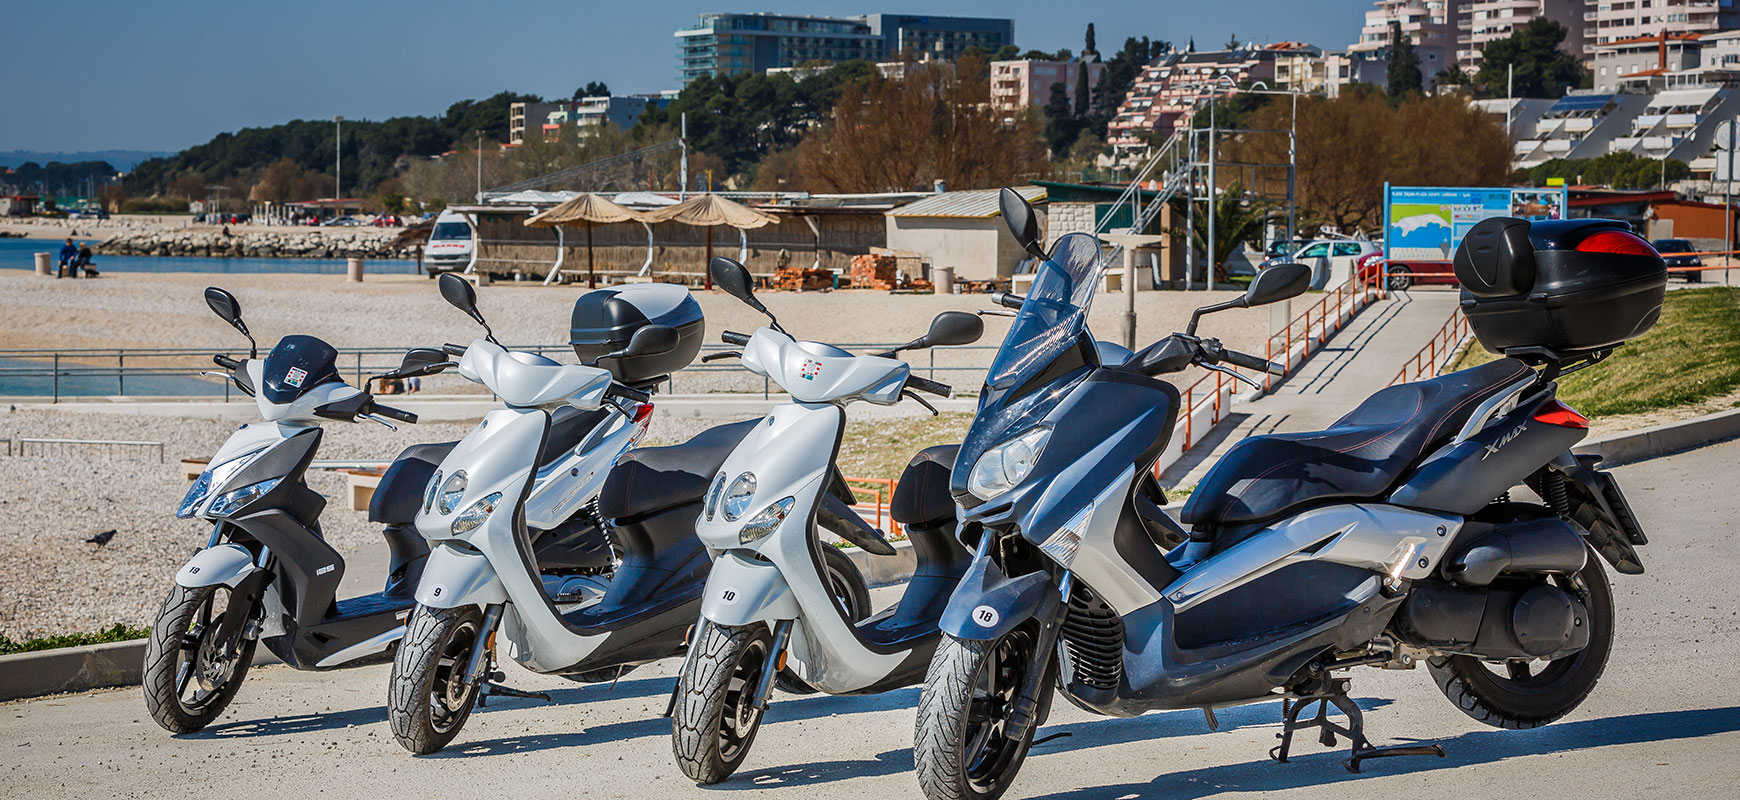 Scooter mieten in Split